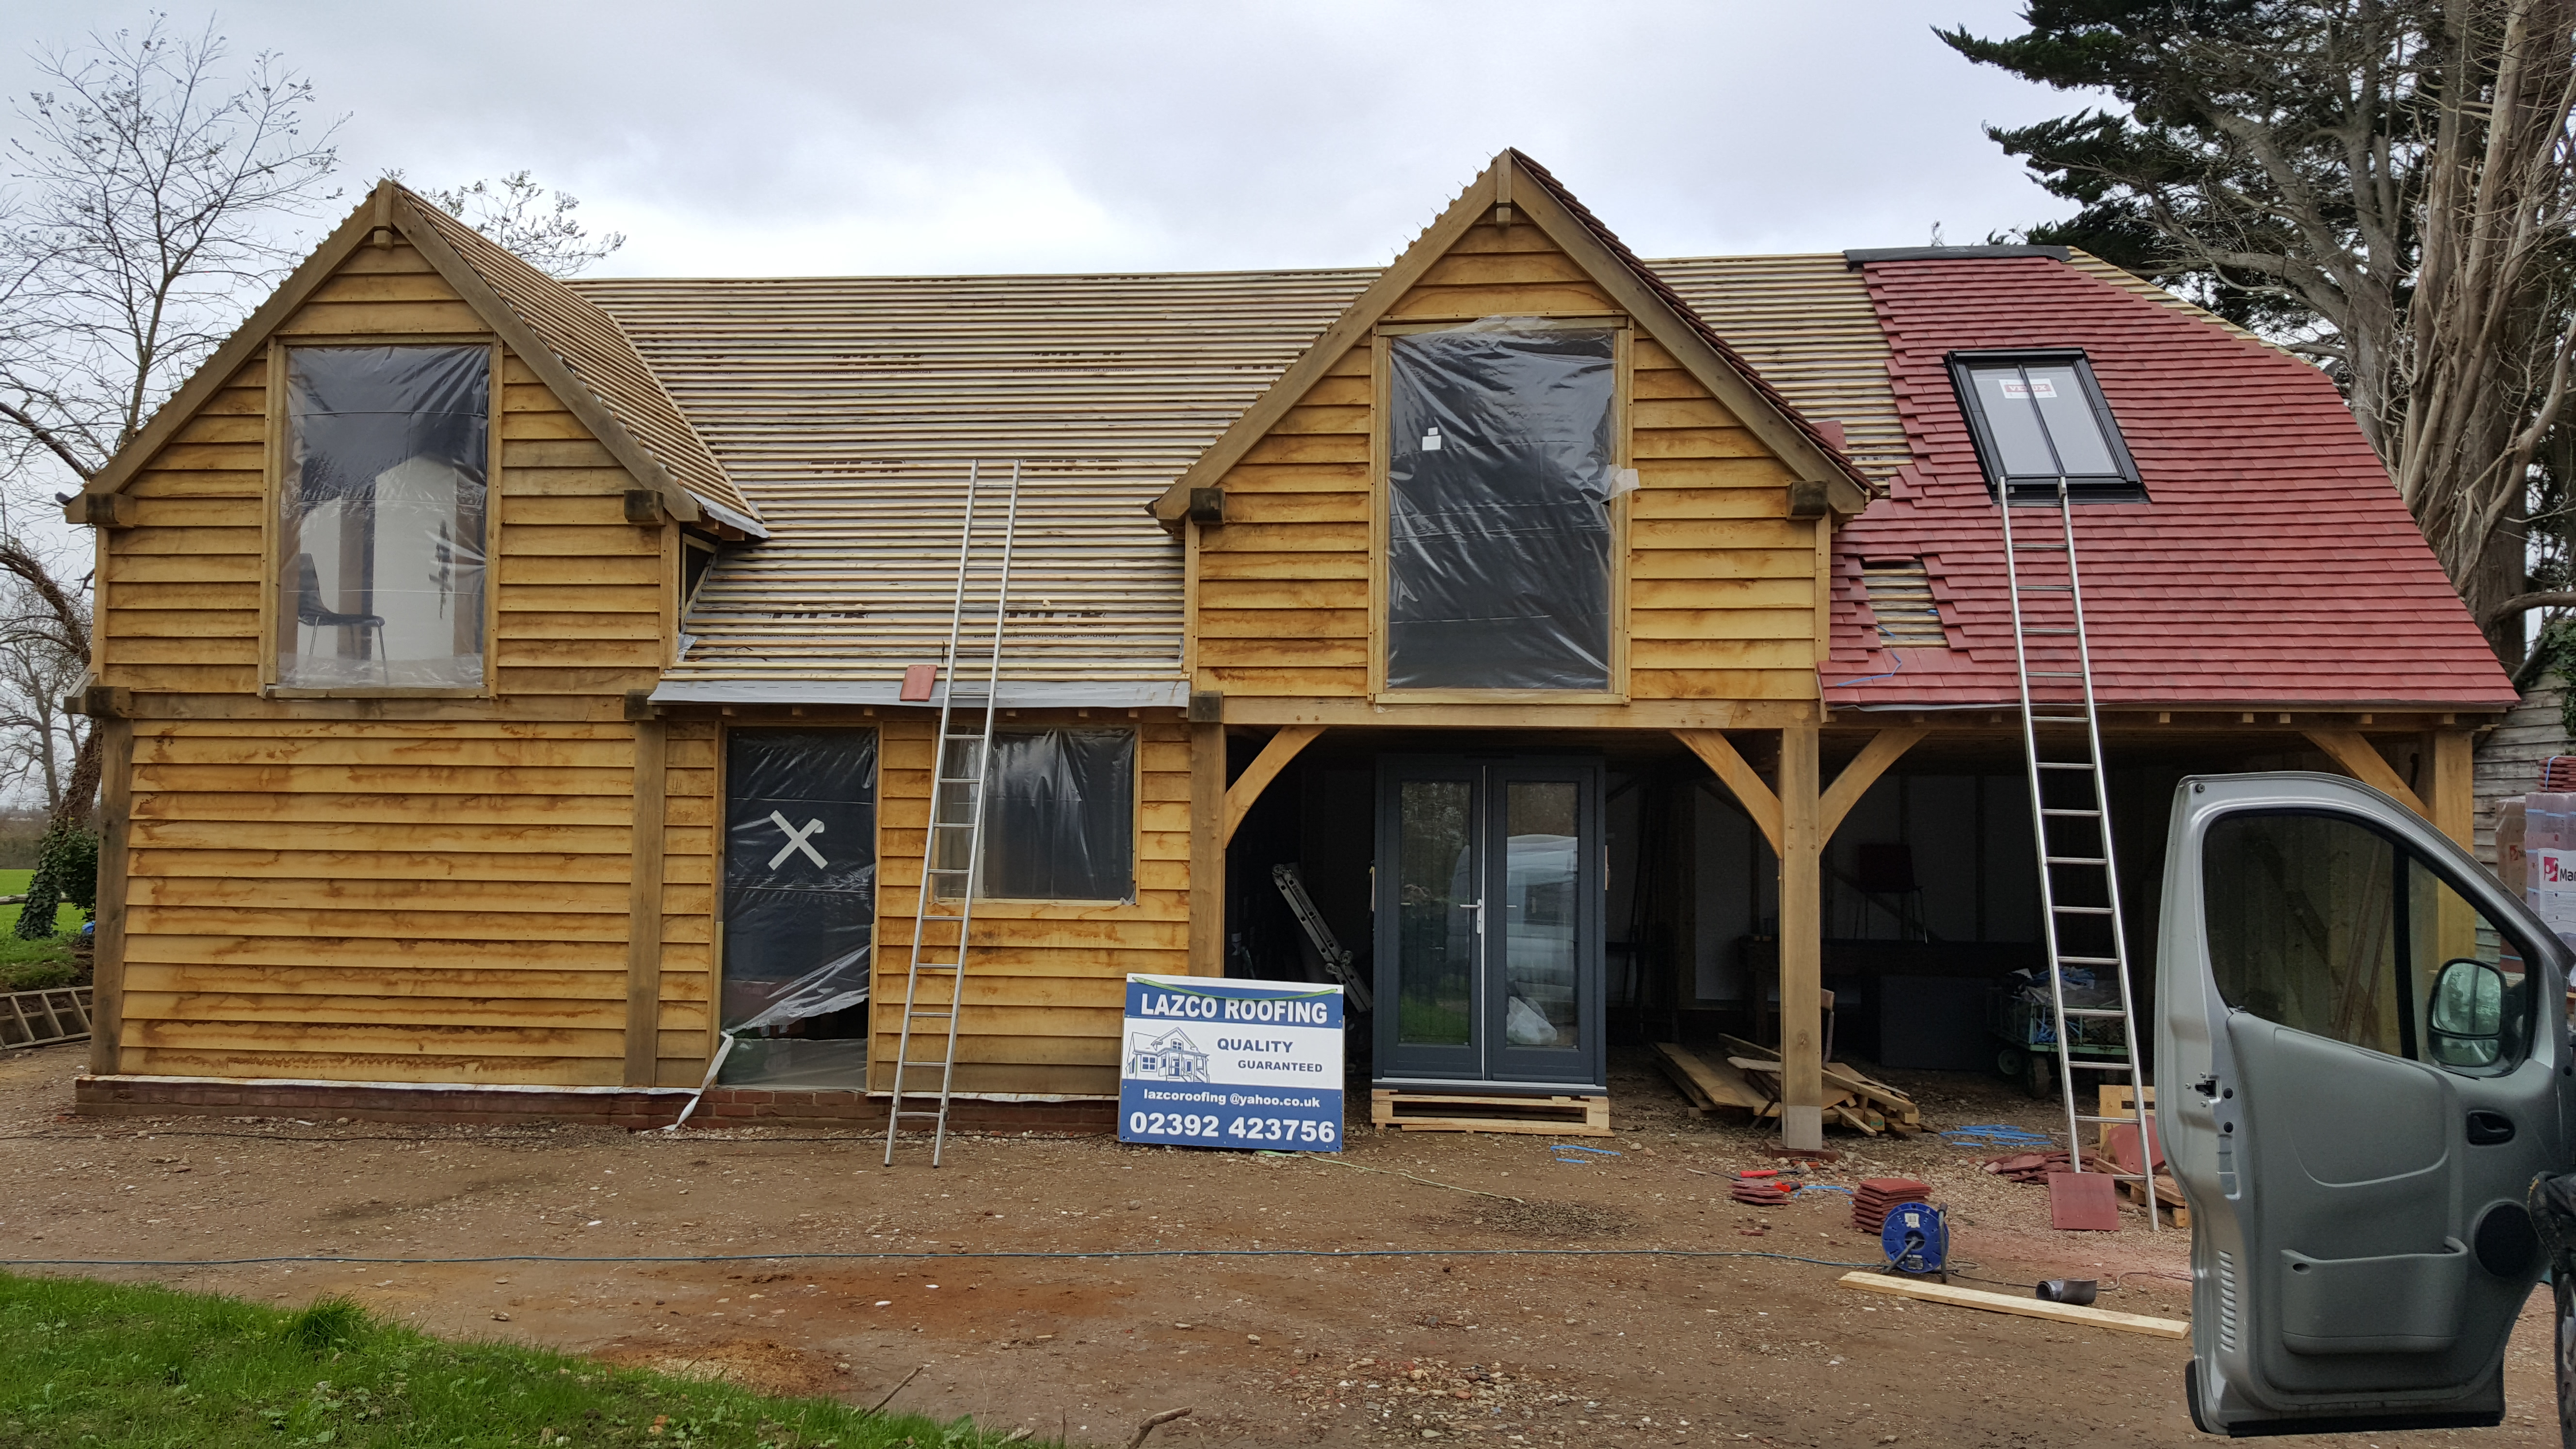 Roofing Services Permaroof Portsmouth